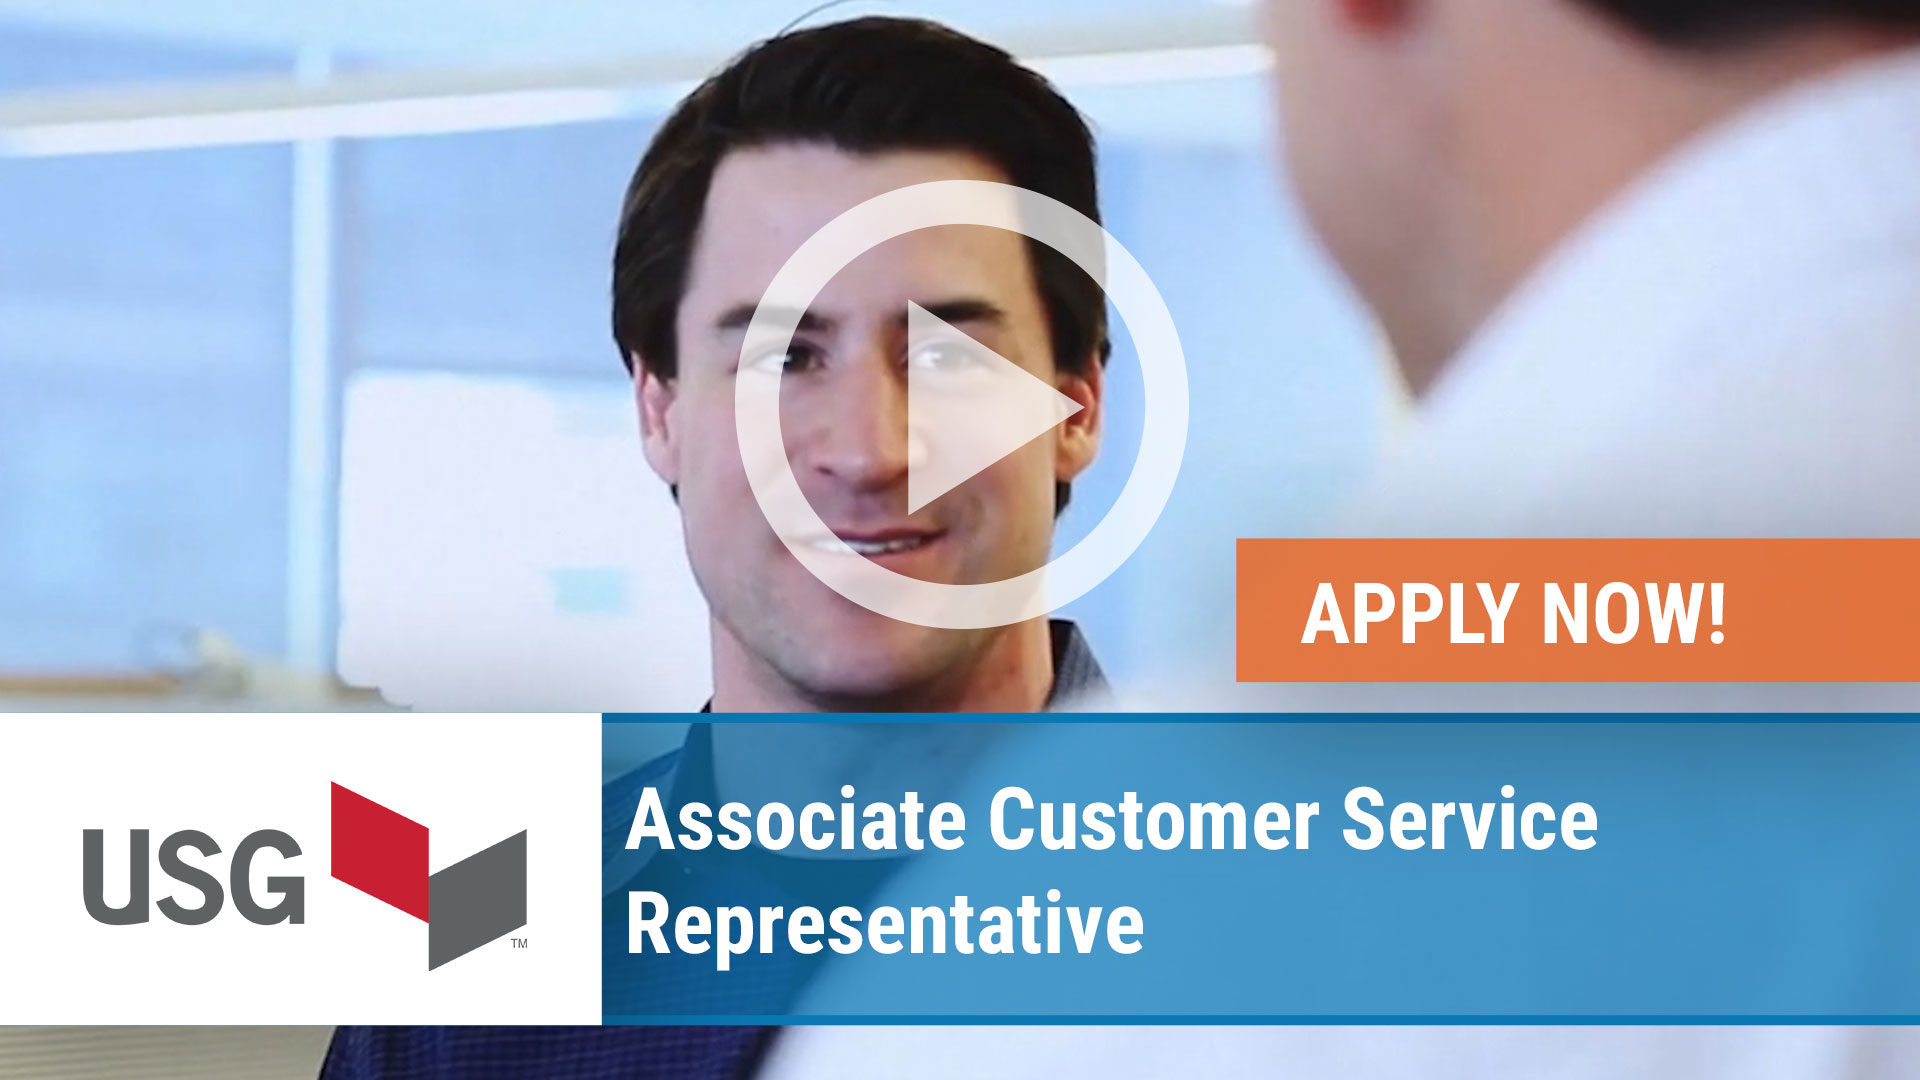 Watch our careers video for available job opening Associate Customer Service Representative in Chicago, Illinois